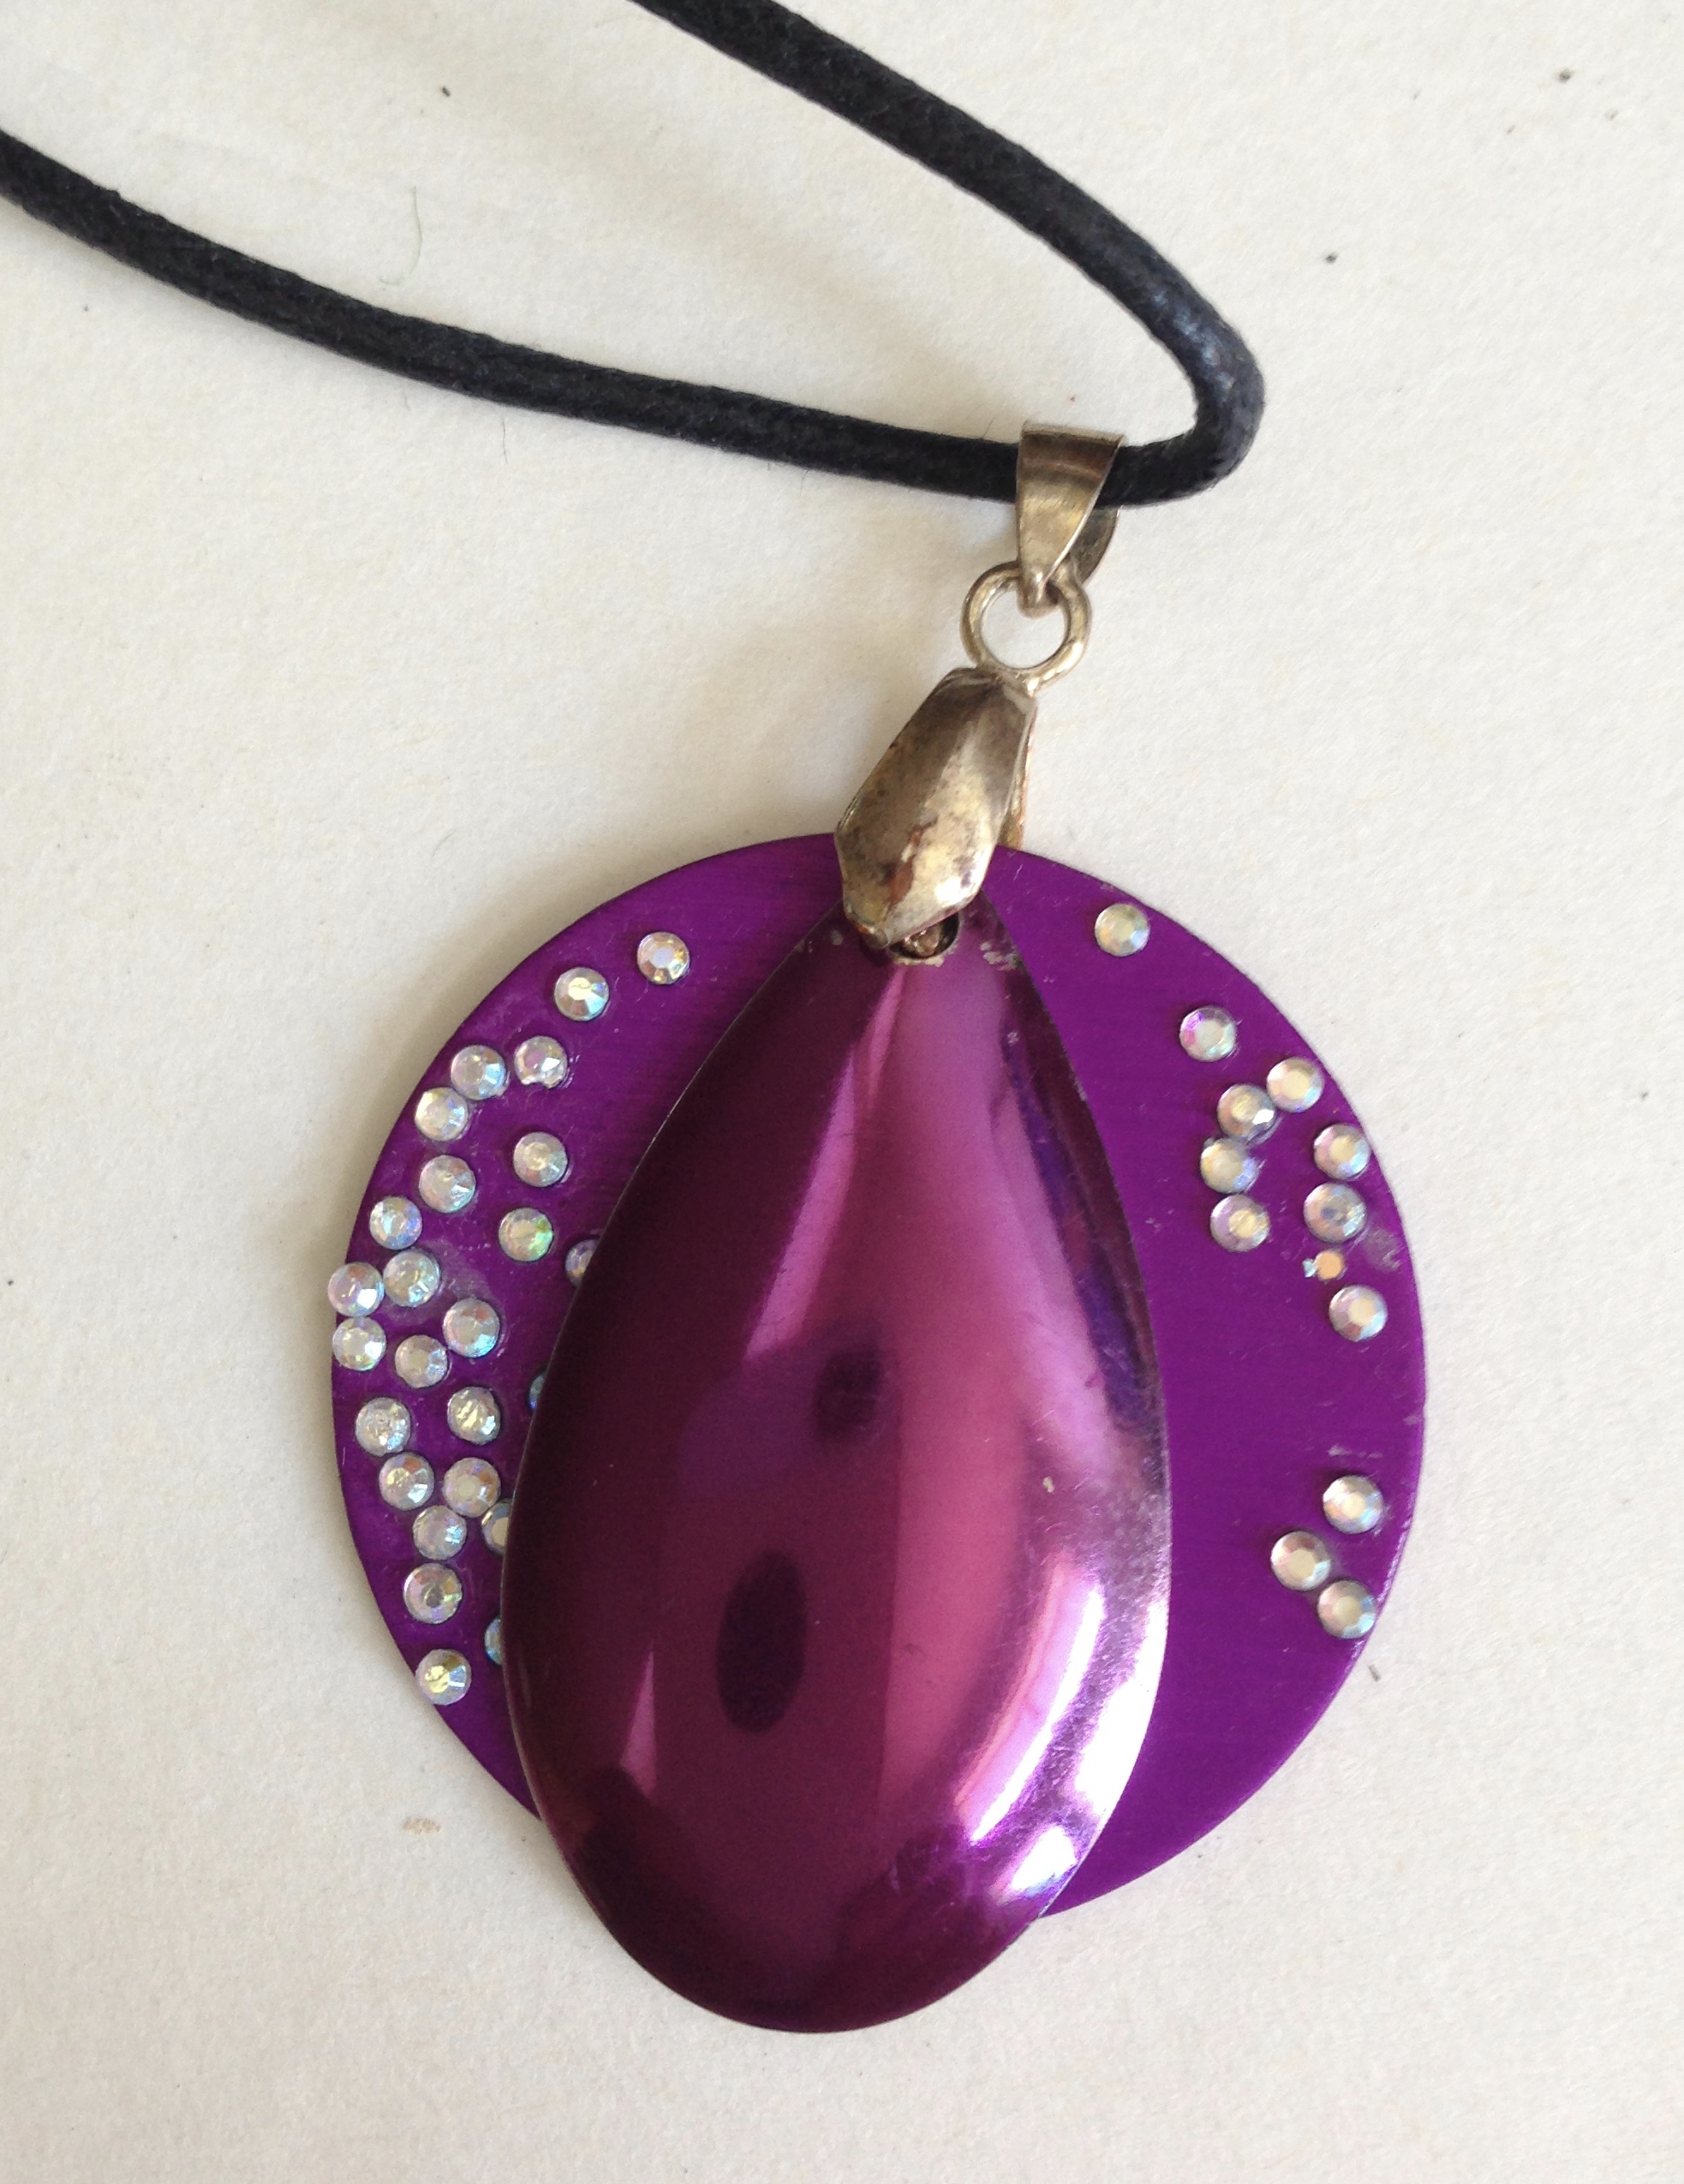 Purple on Purple Energy Necklace with Bling